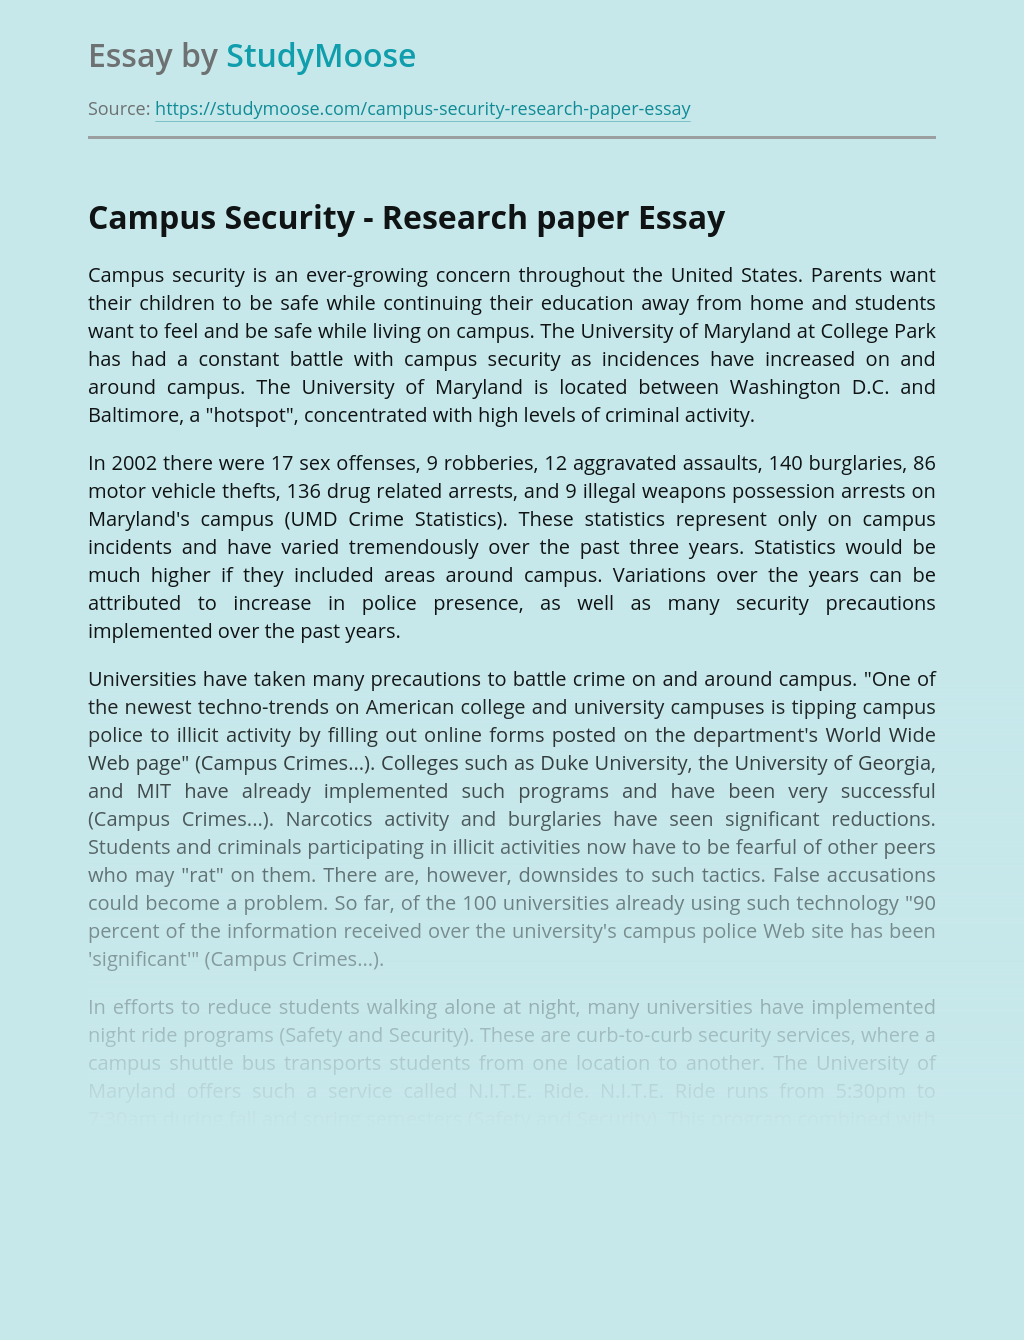 Campus Security - Research paper